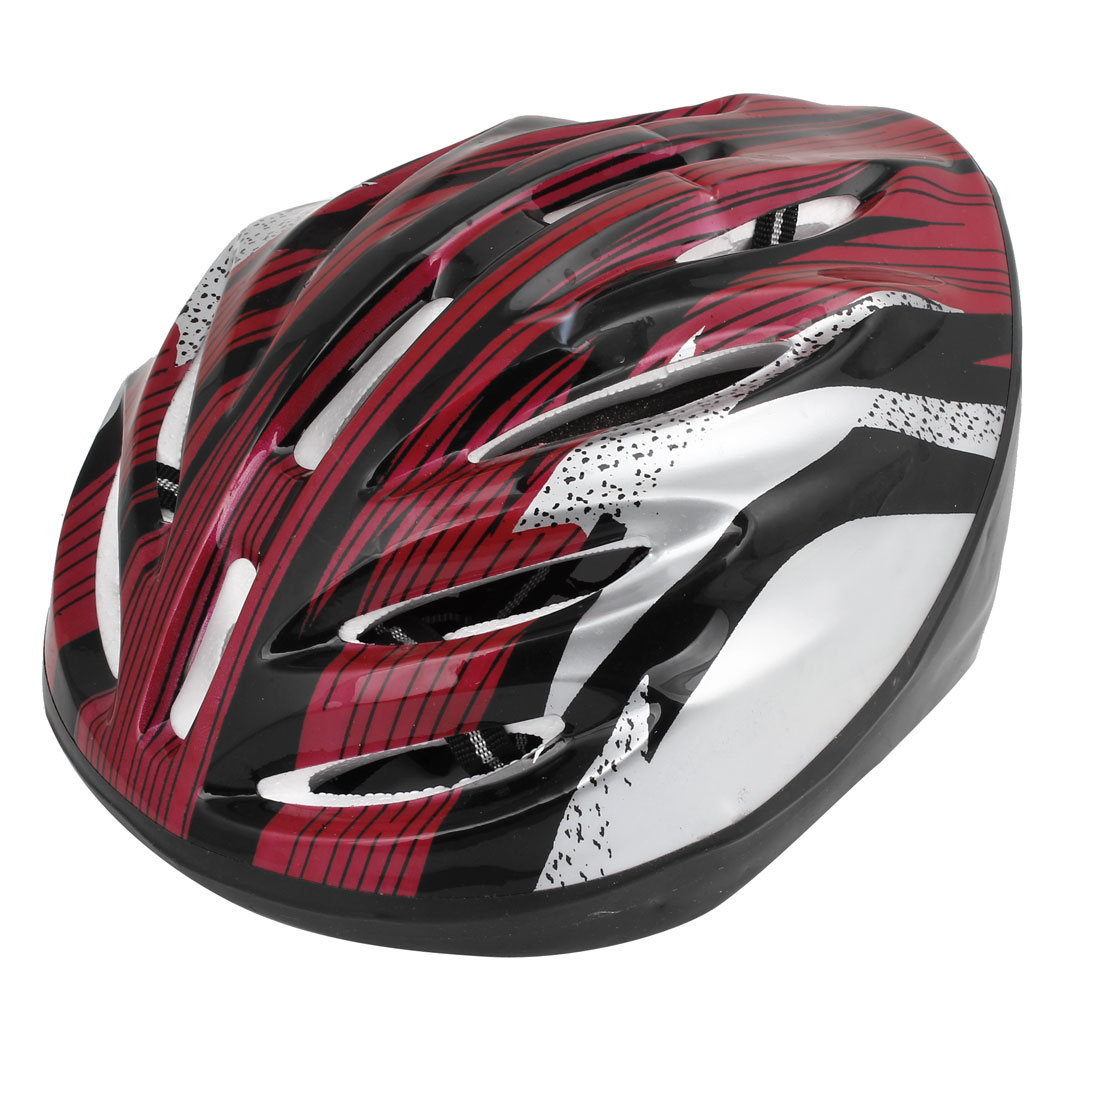 Bicycling Skateboarding Stripes Print Foam Lining Safety Helmet Black Red